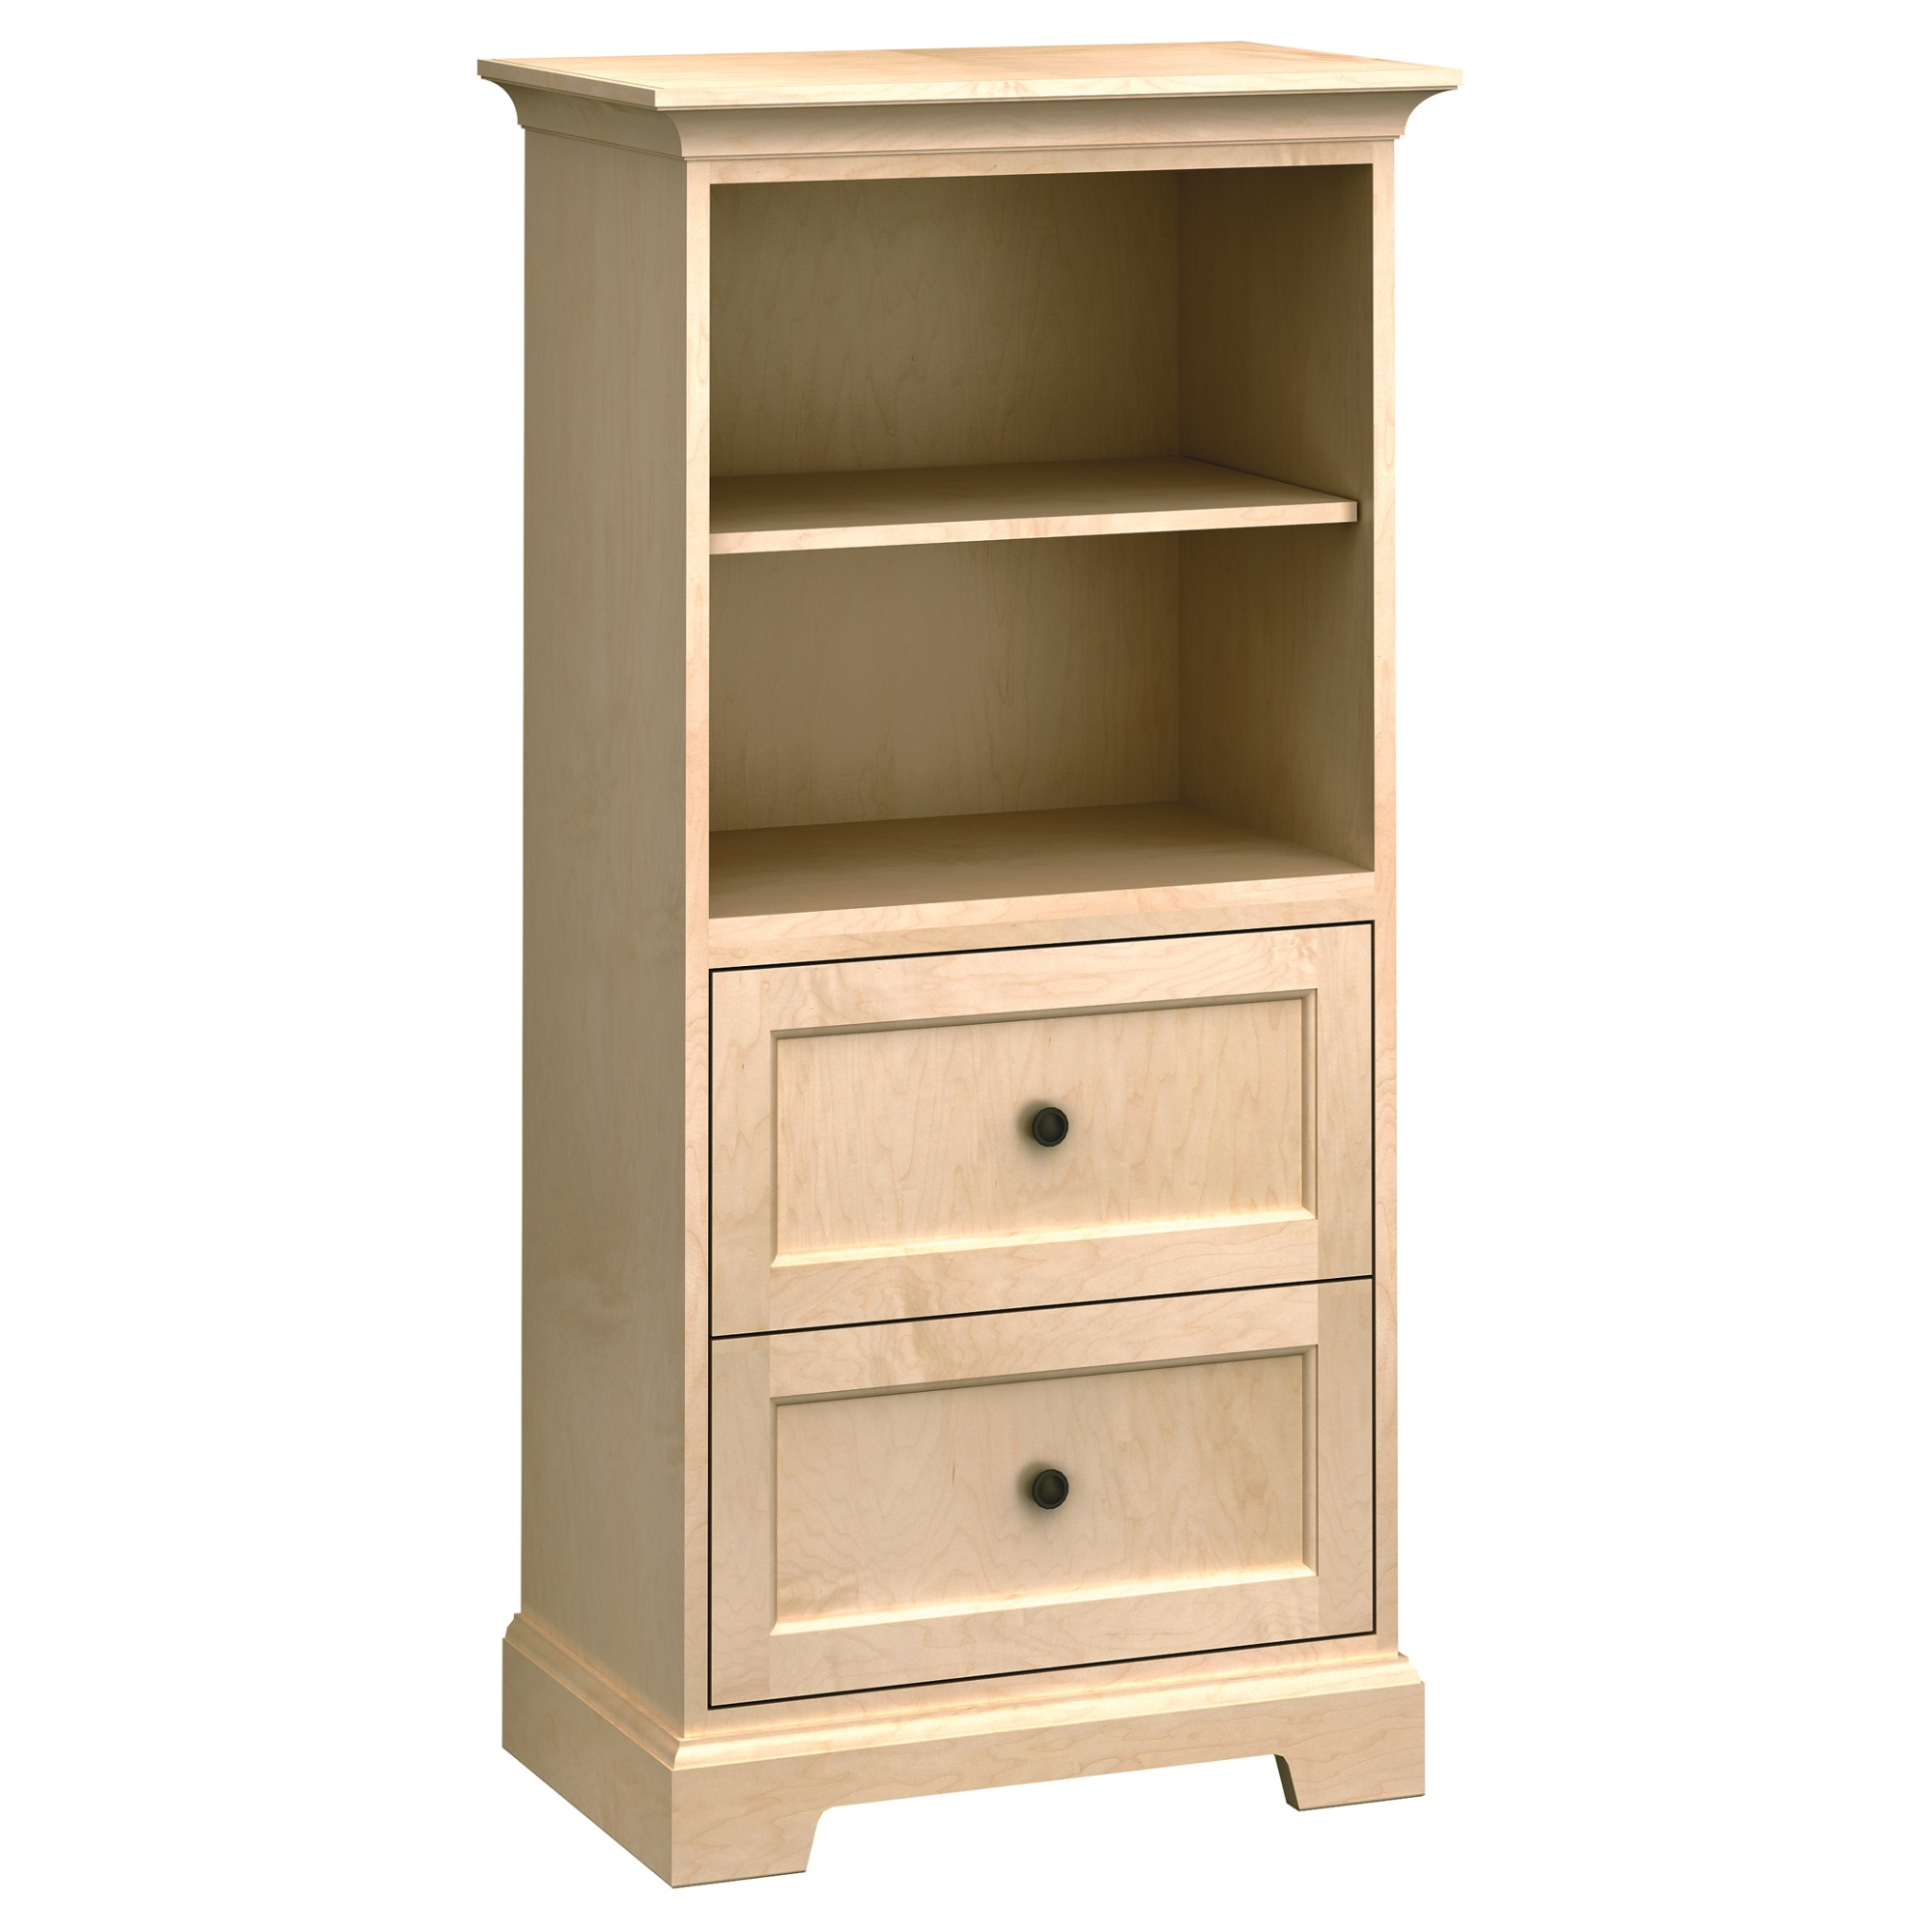 Image for HS27A Custom Home Storage Cabinet from Howard Miller Official Website